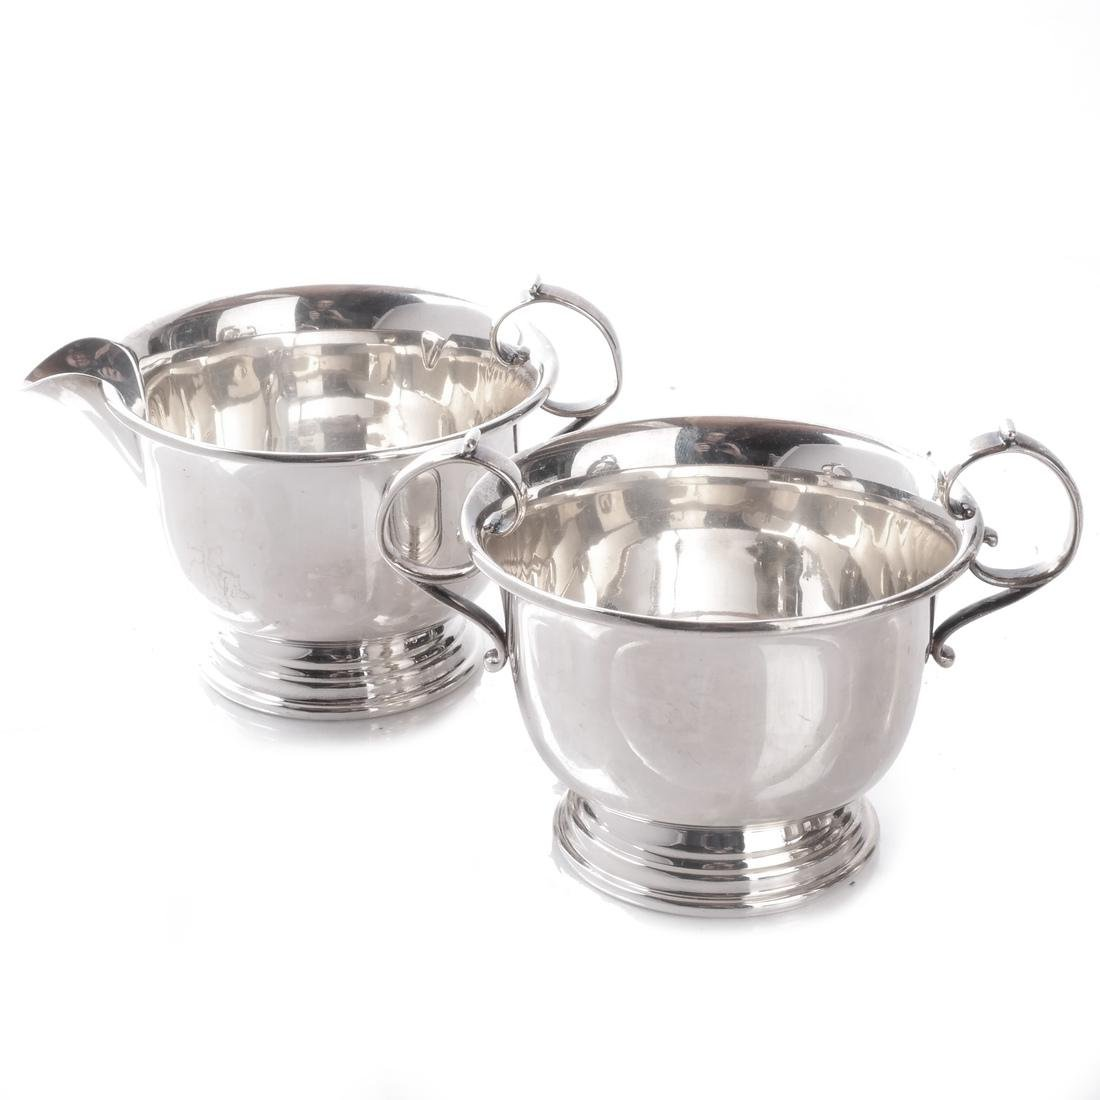 Sterling Silver Creamers and Sugar Bowl - 4